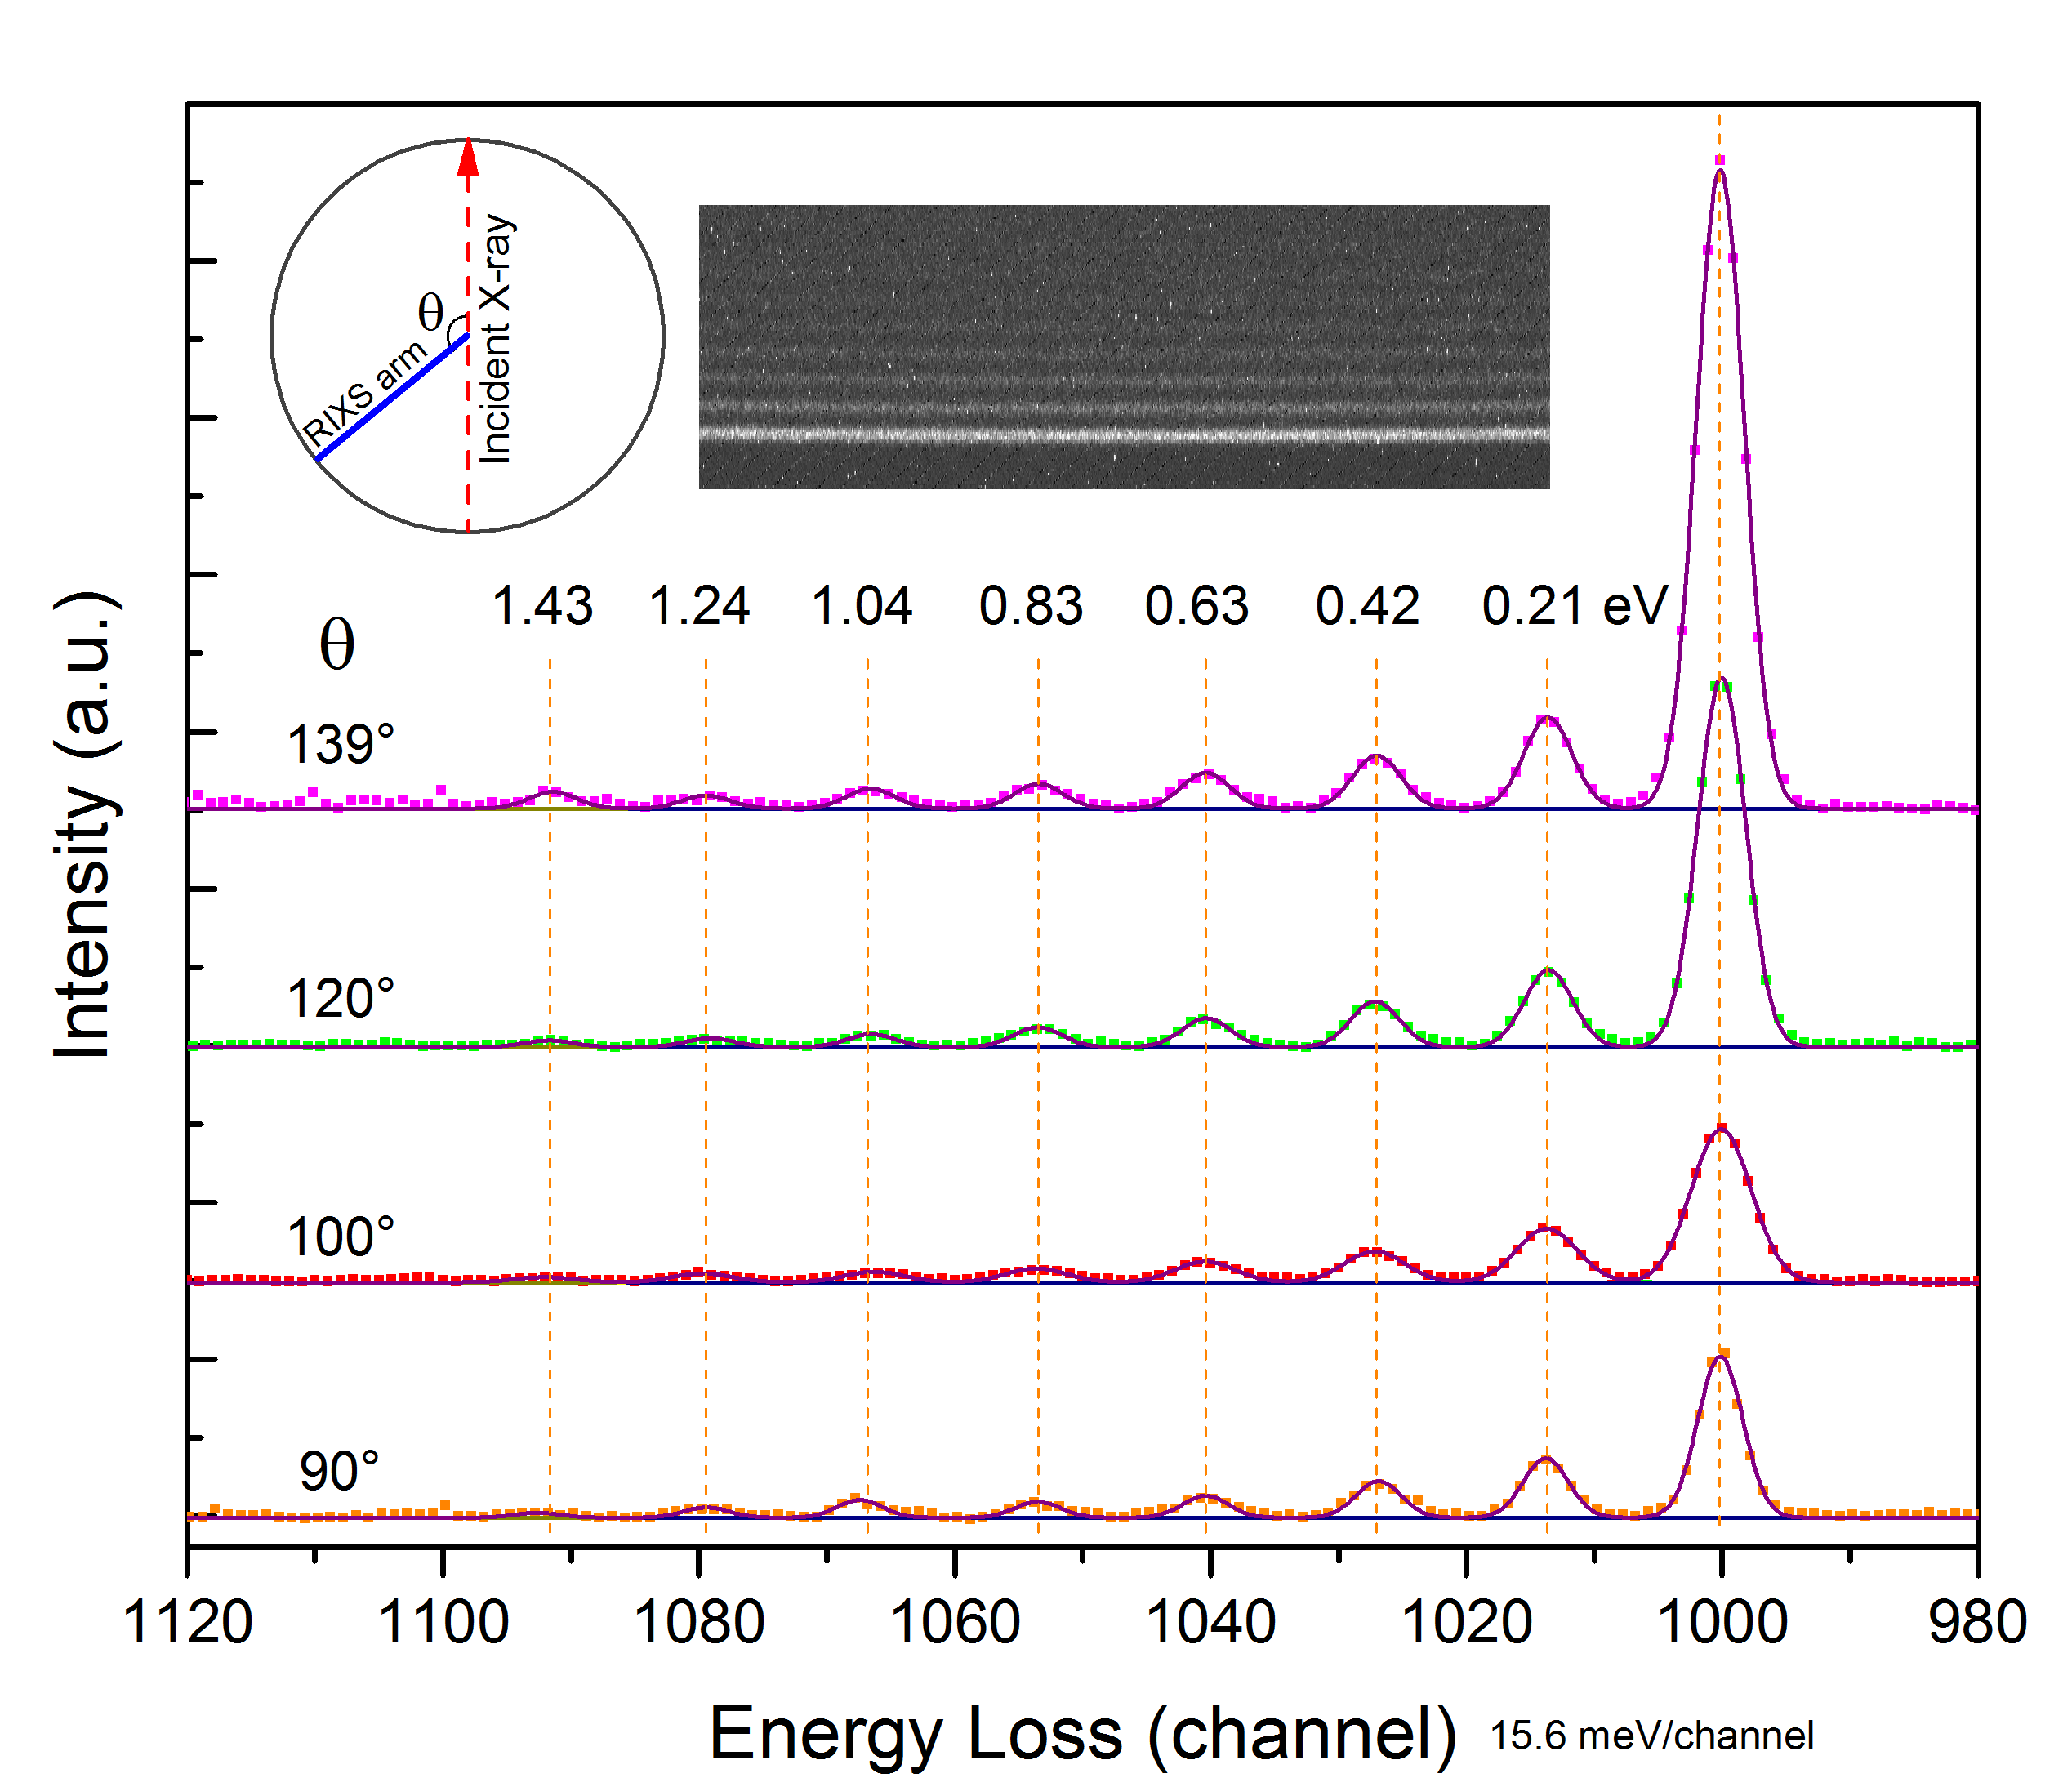 RIXS spectra of liquid acetone vibrations detected at the excitation energy of 531 eV and various θ angles. The intense peaks at the channel 1000 come from the elastic scattering, and the rest, equally-spaced peaks represent the vibrational excited final states in the electronic ground state. The RIXS resolution (combined with the beamline) at 531 eV is about 60 meV.